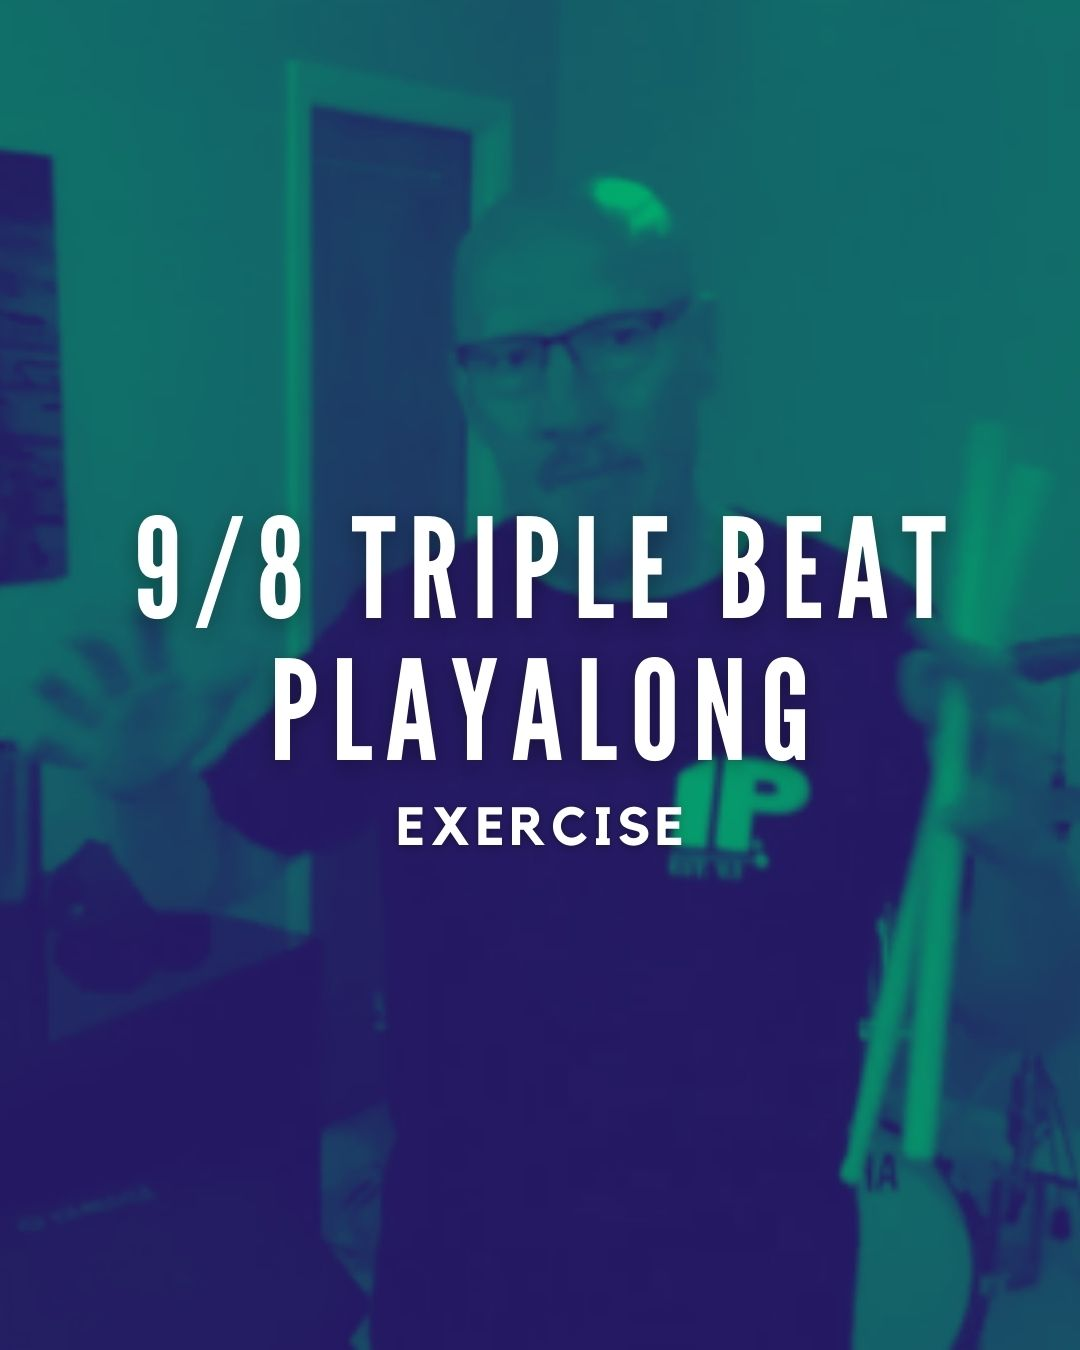 9/8 Triple Beat Playalong